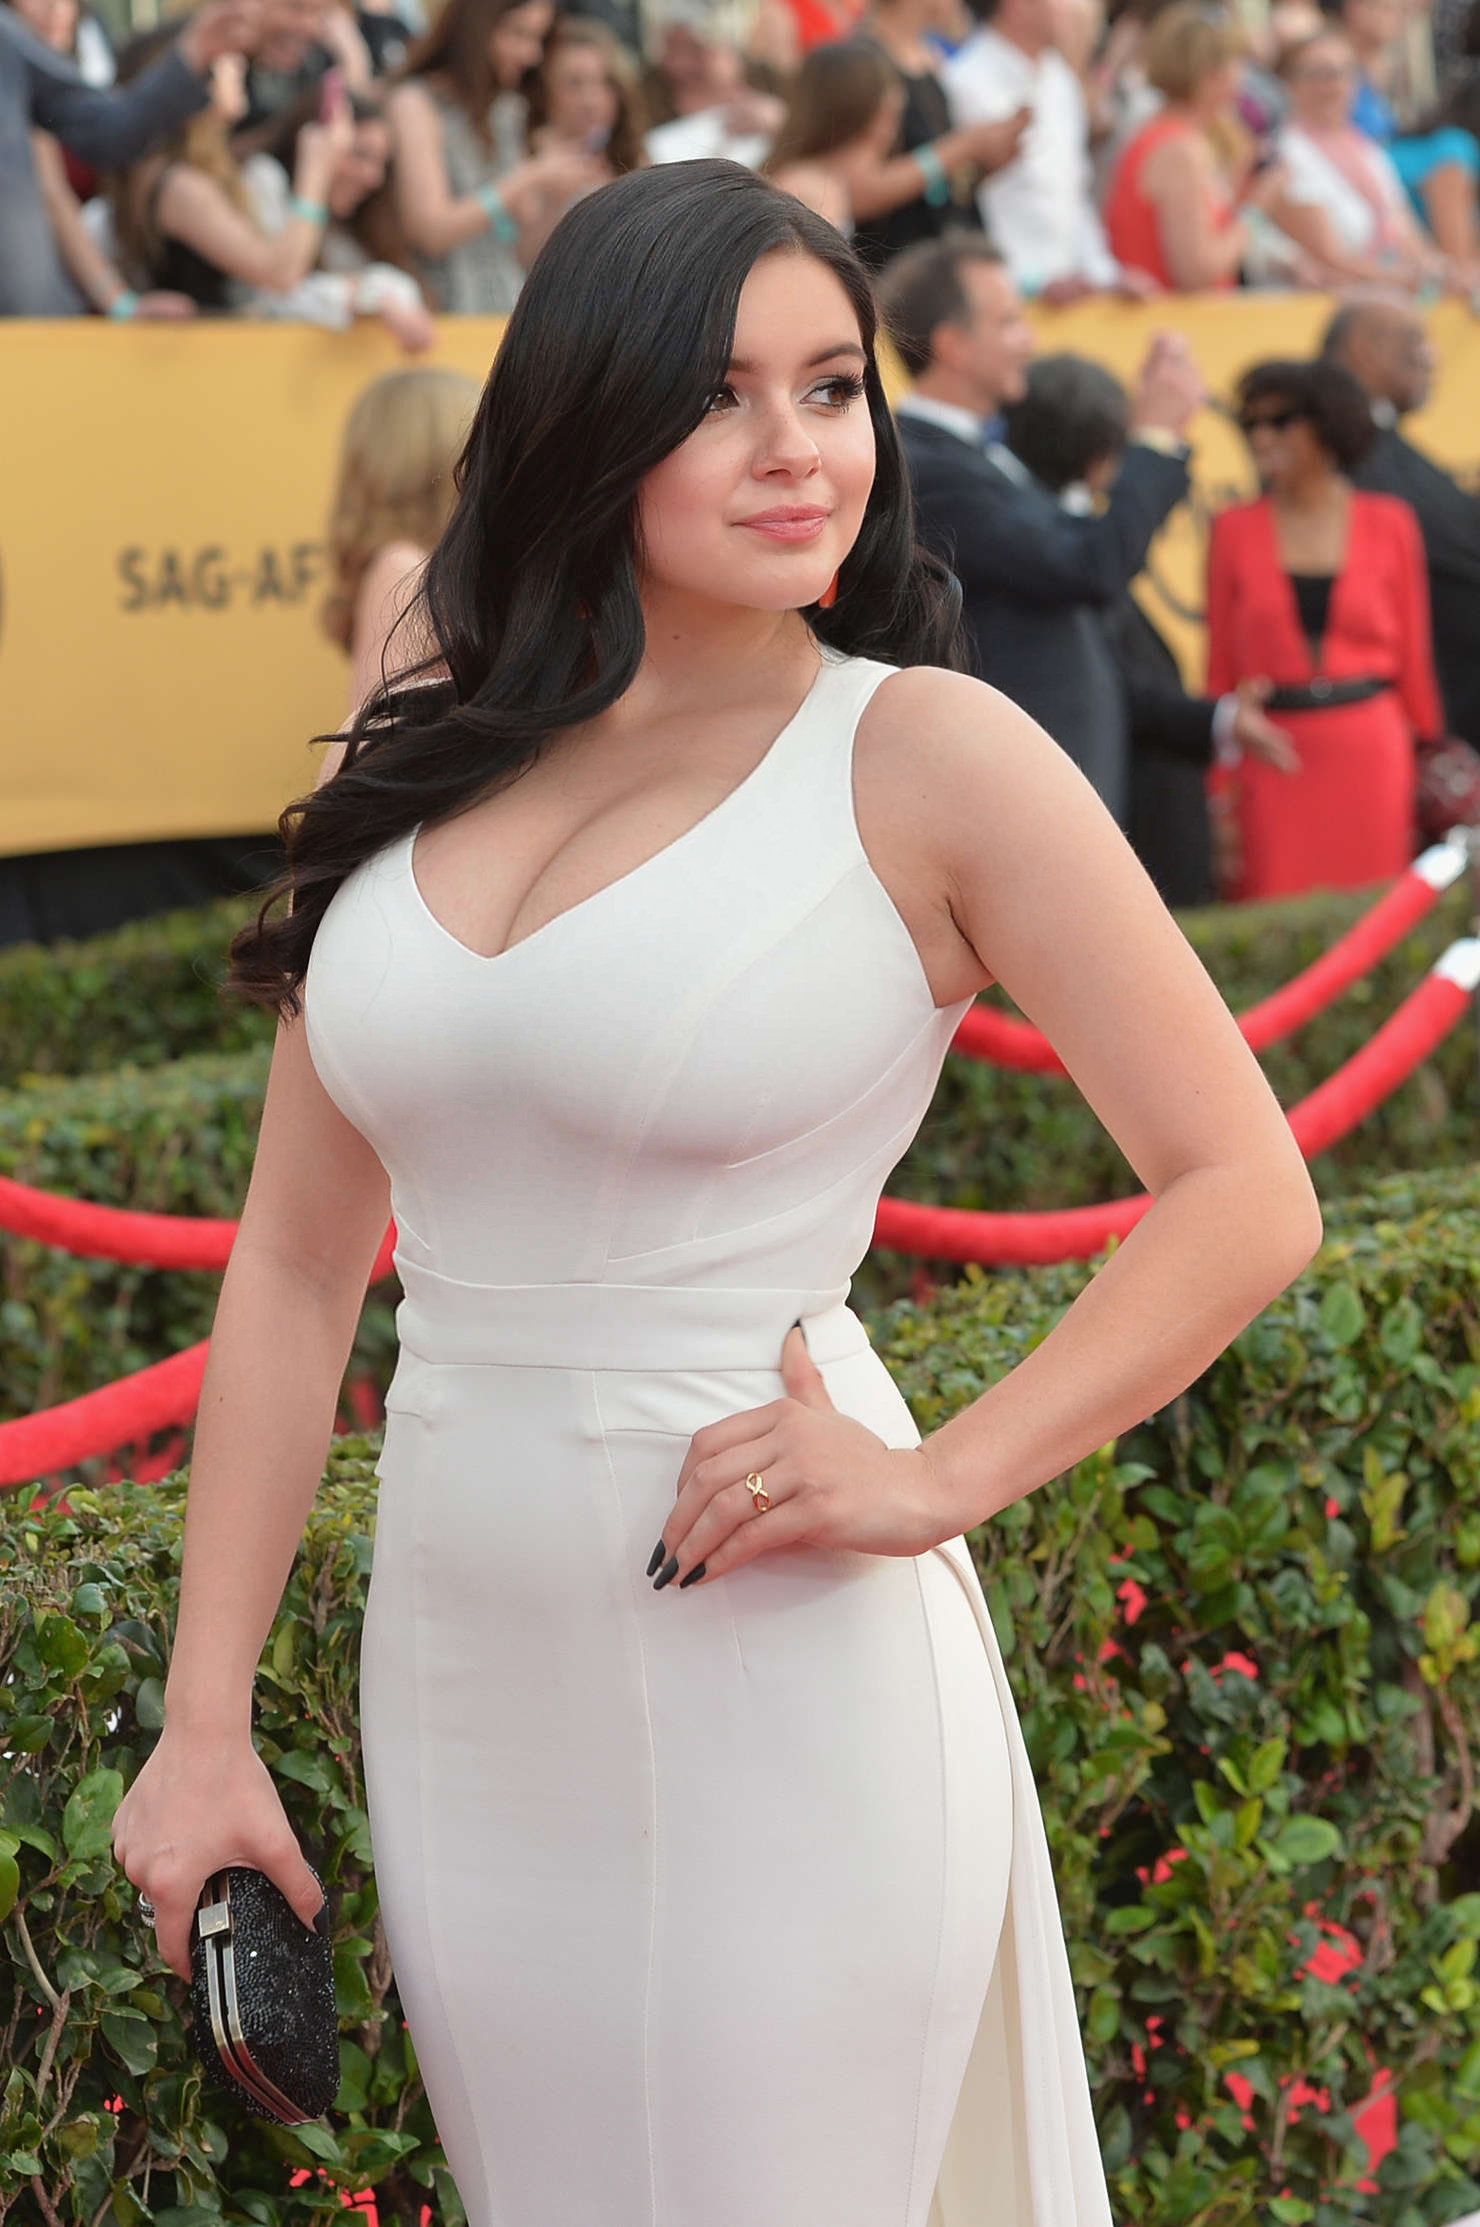 Ariel Winter sexy women picture